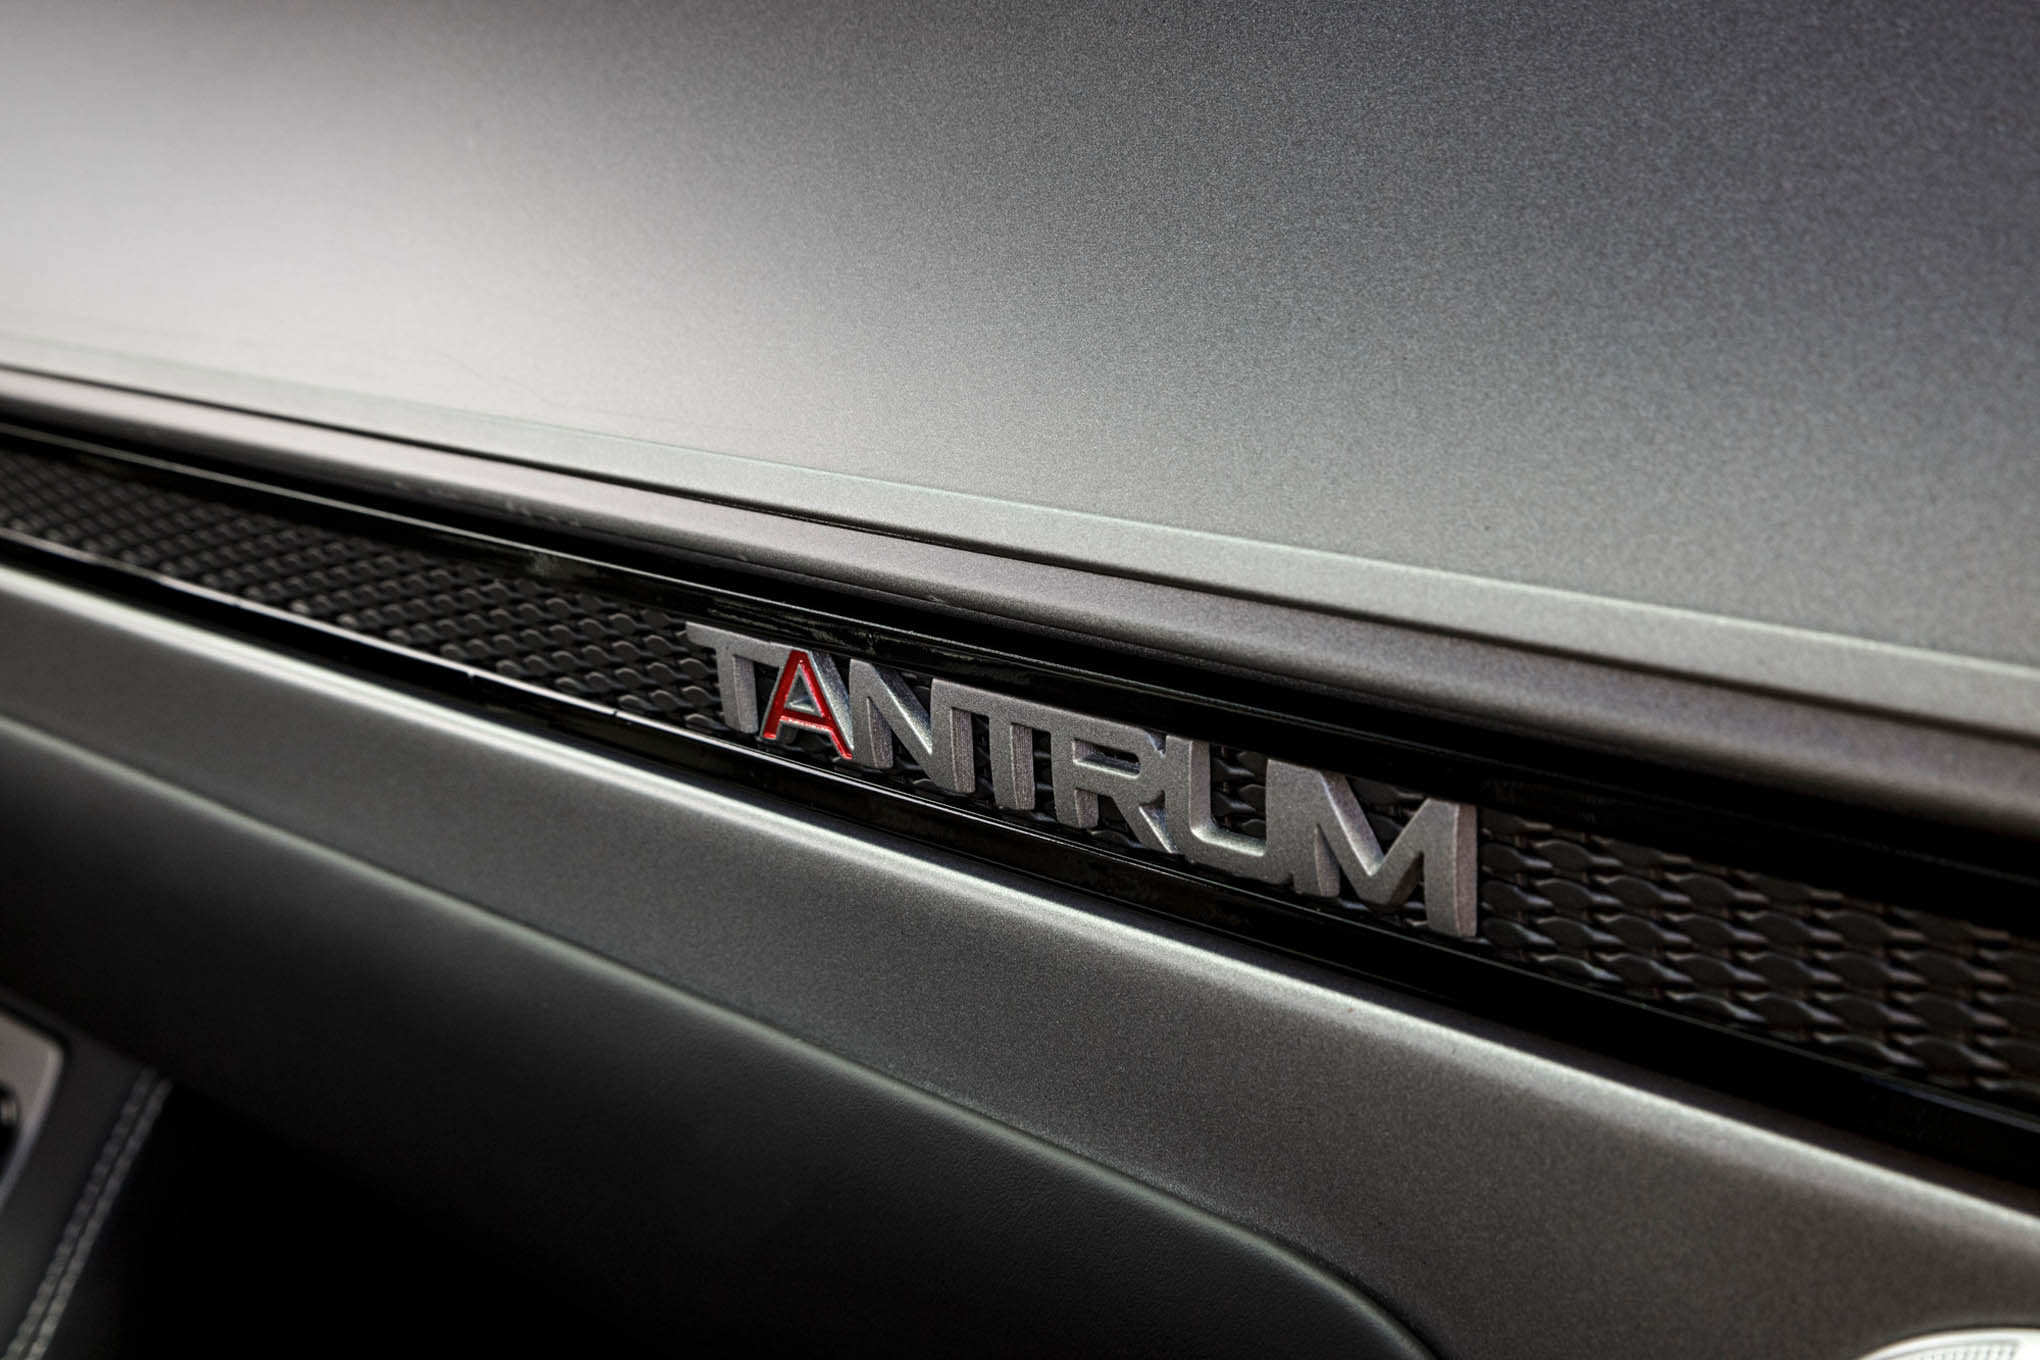 The Tantrum emblem in the dash mirrors the black and silver tone of the car, with just a hint of red highlight.